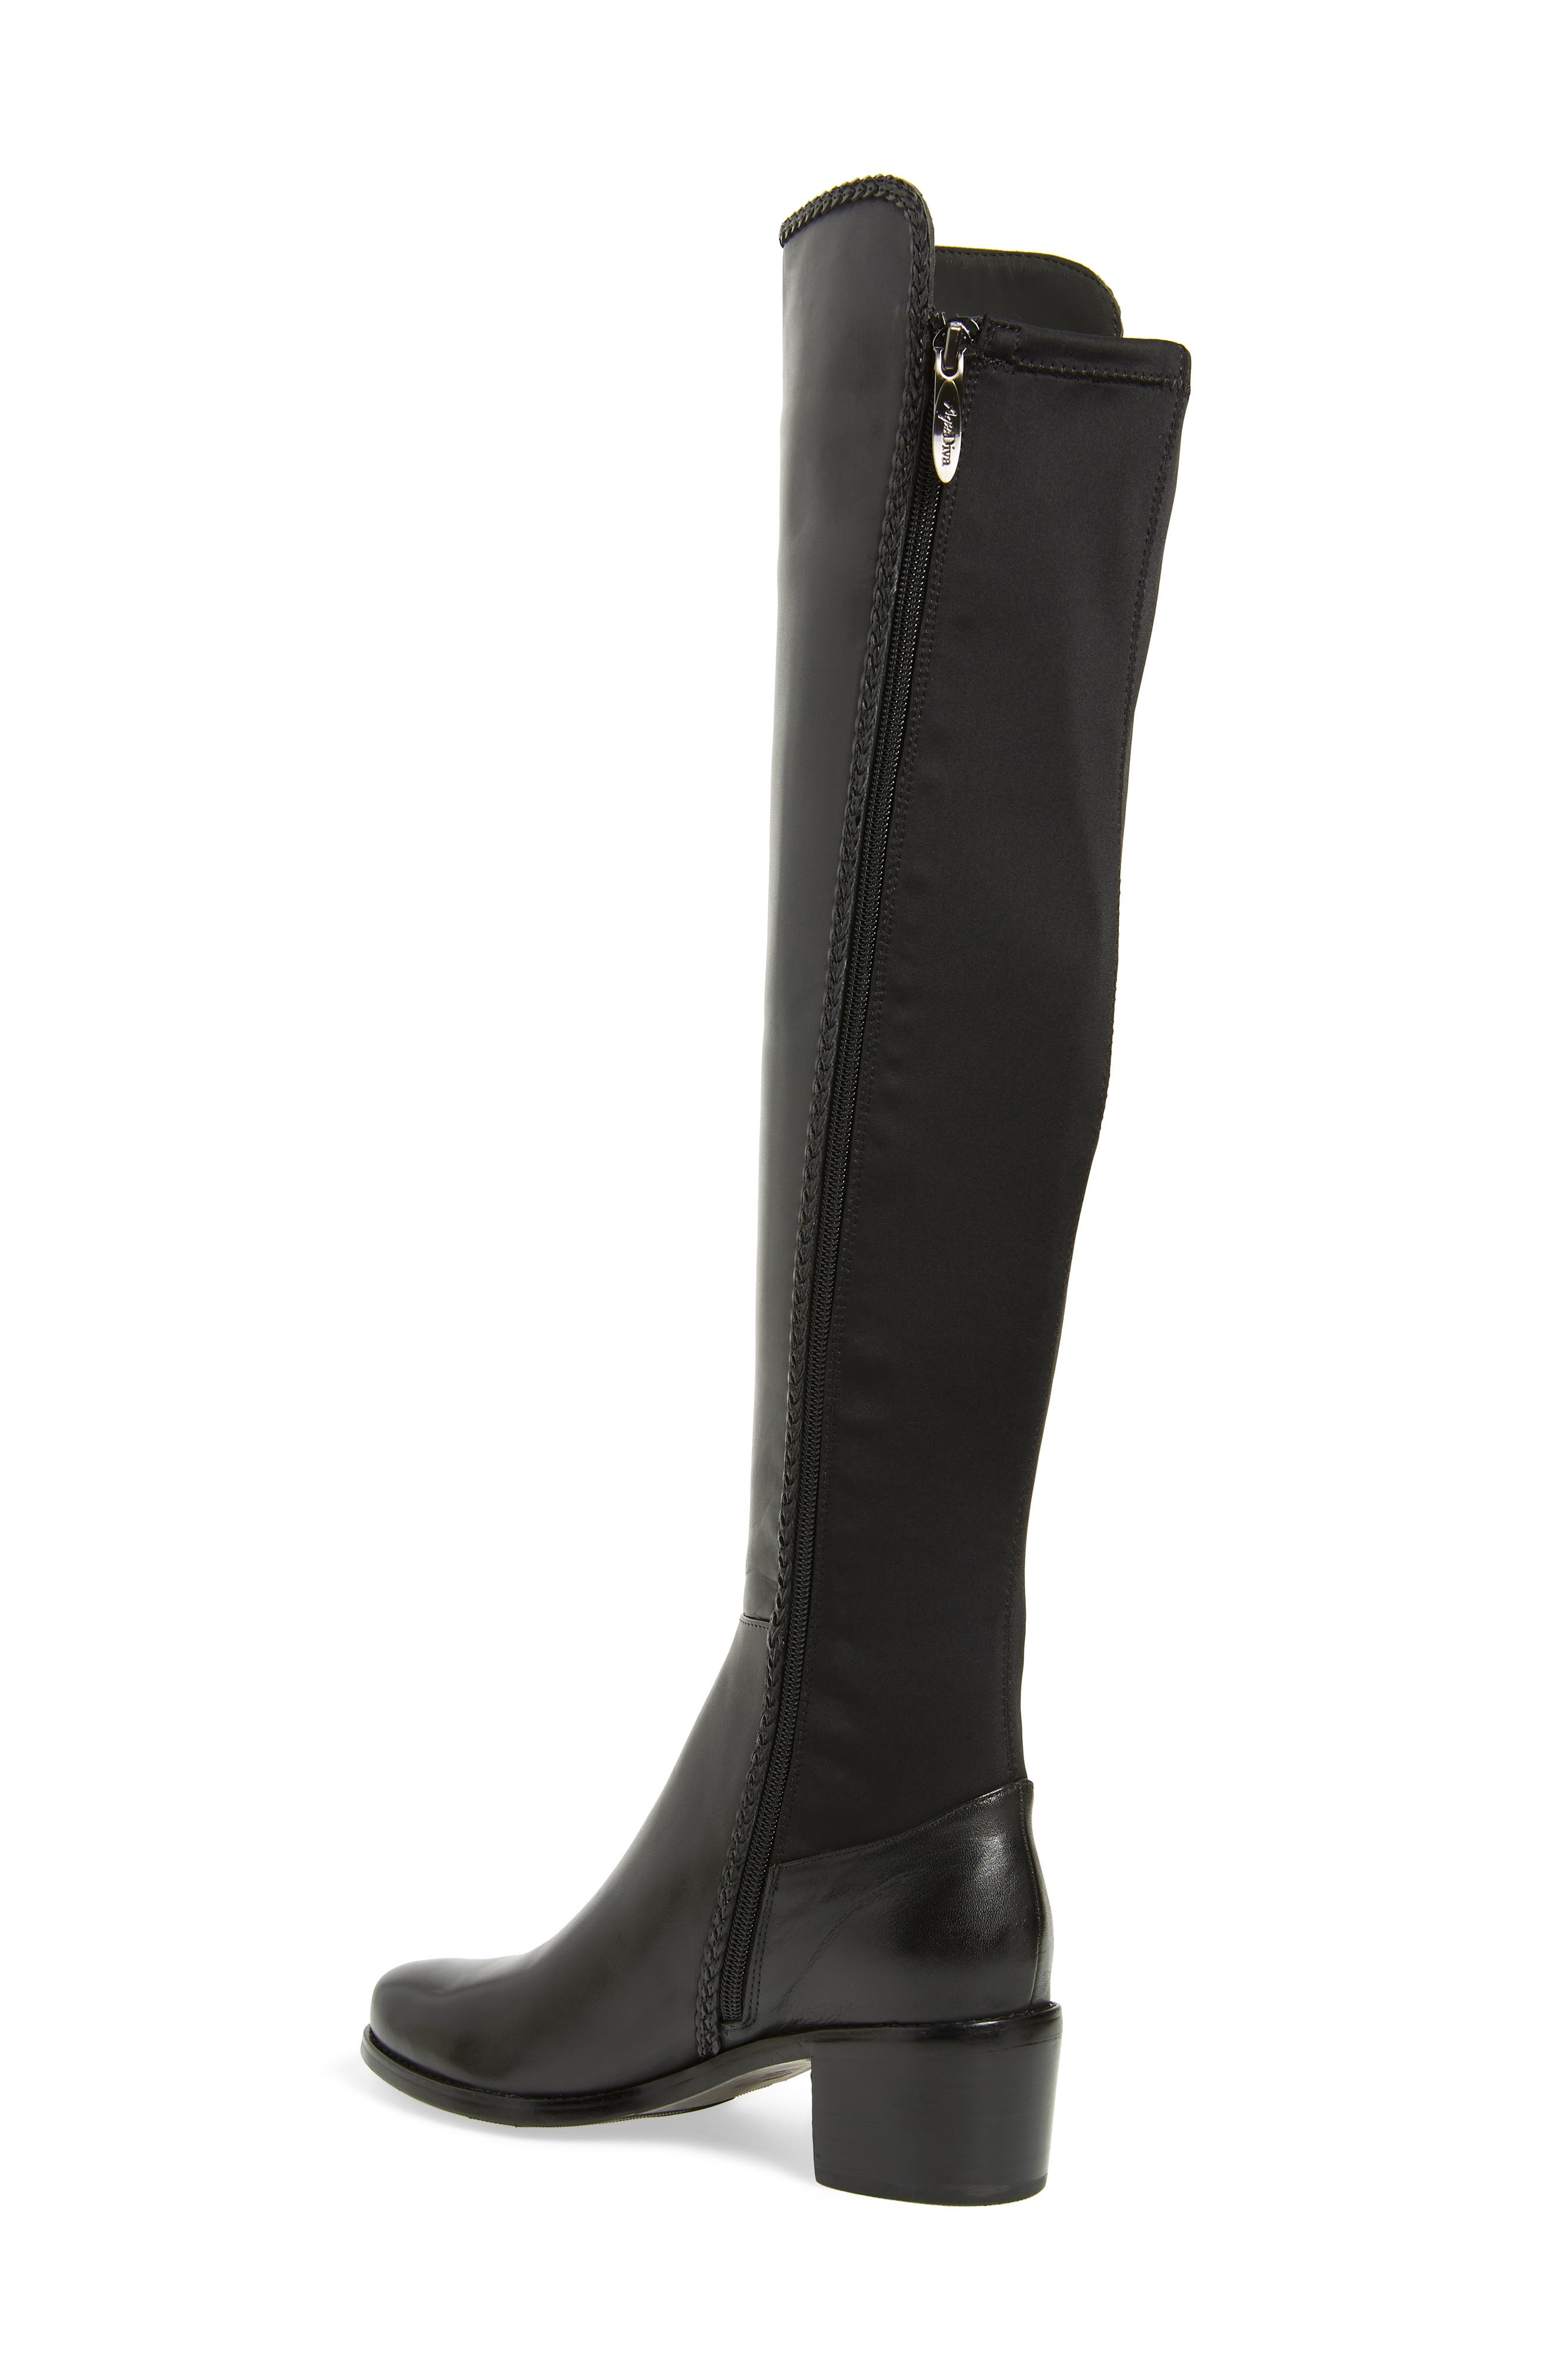 Florence Waterproof Over the Knee Boot,                             Alternate thumbnail 2, color,                             001